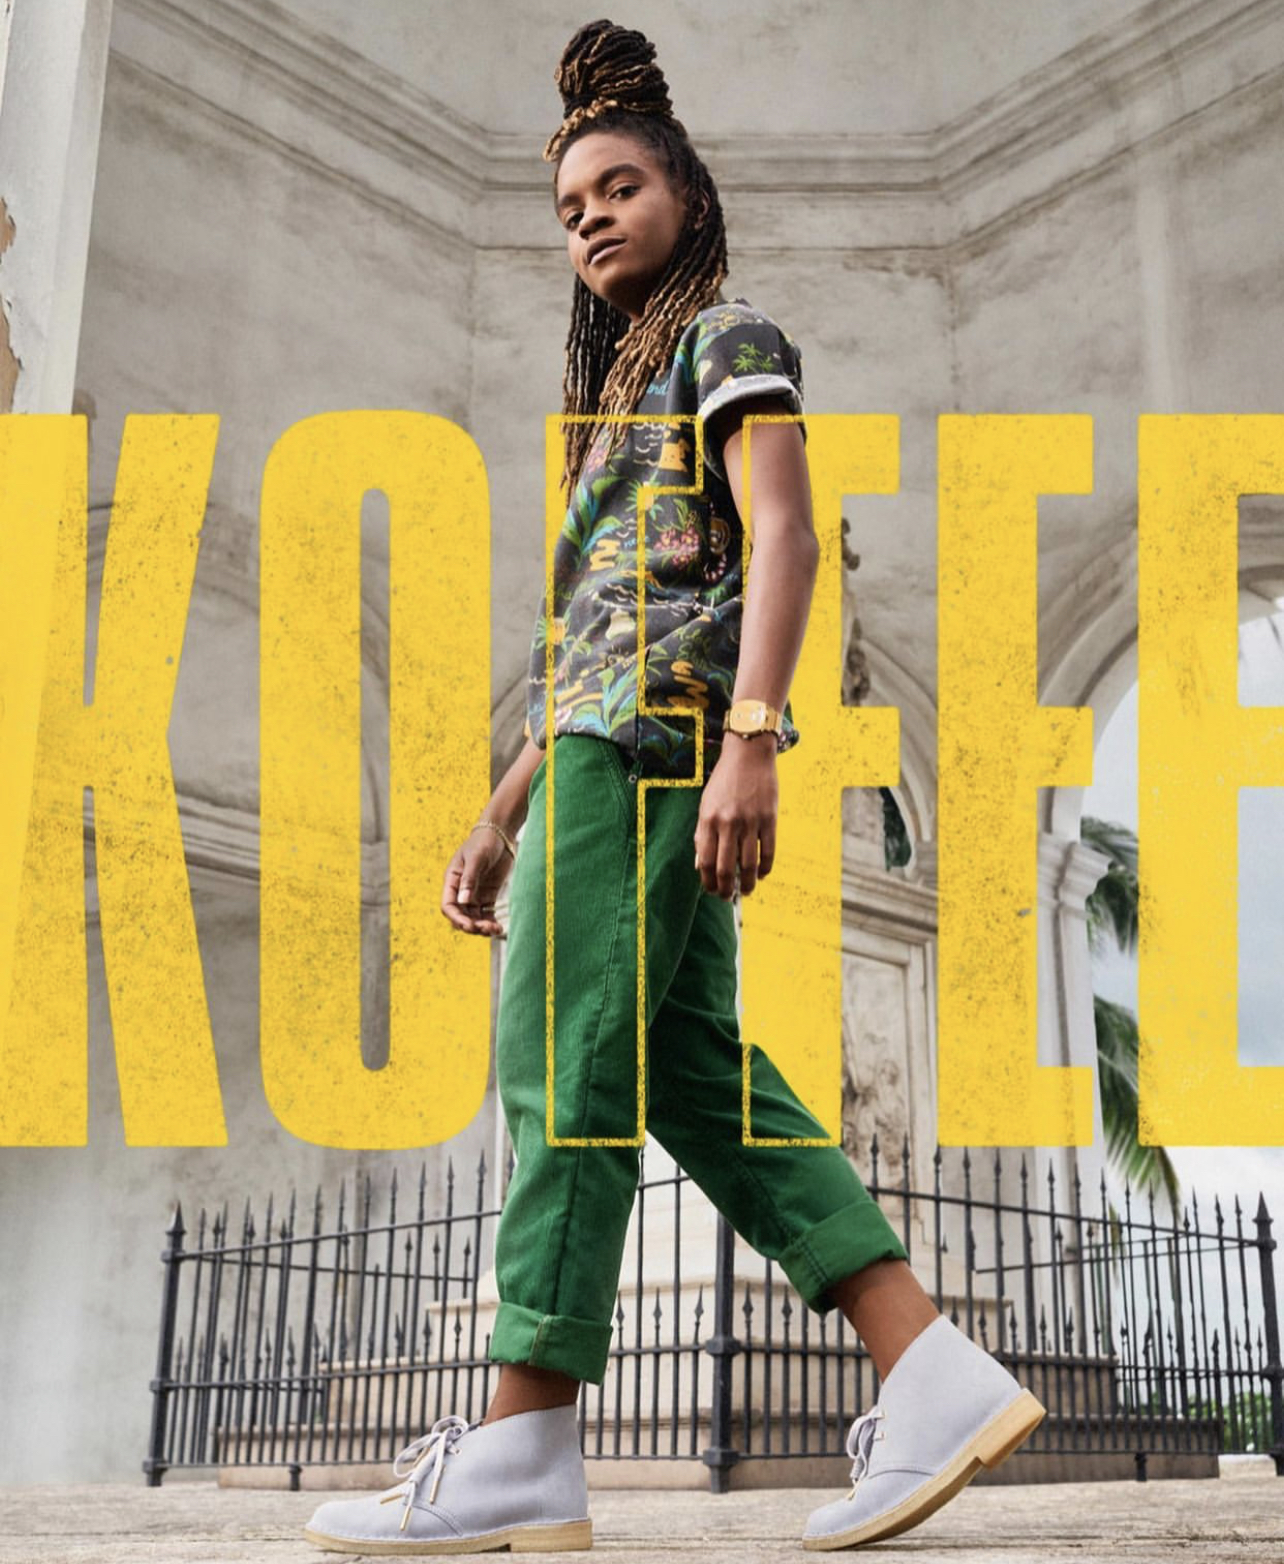 Koffee grabs silver certification for Rapture in the UK Inbox